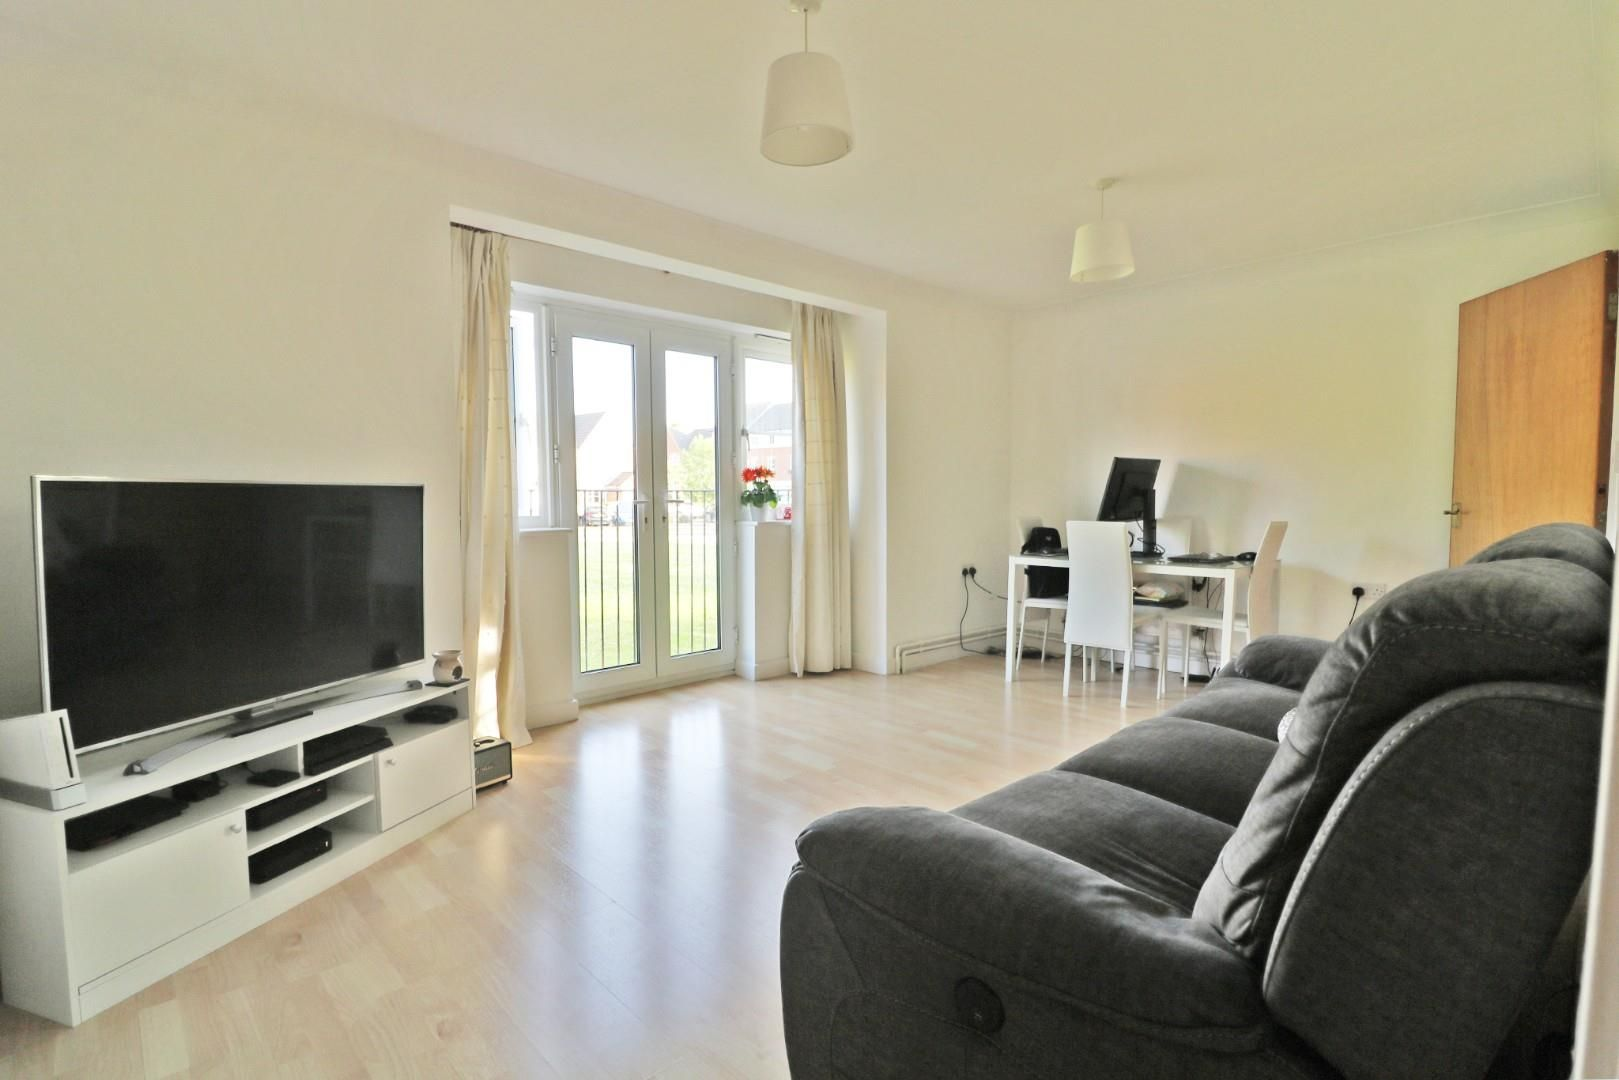 2 bed apartment to rent 2